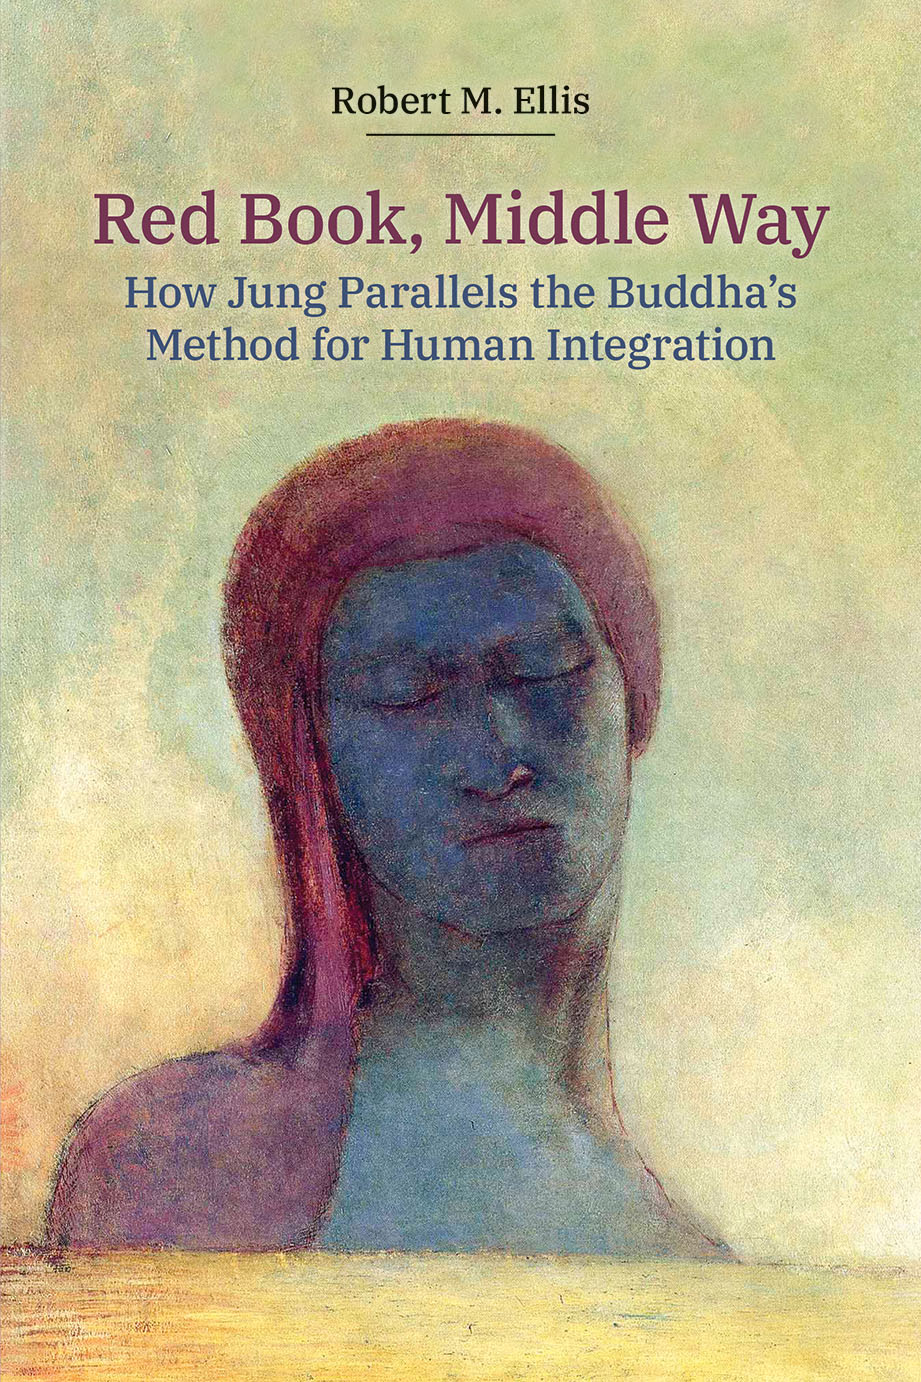 Red Book, Middle Way - How Jung Parallels the Buddha's Method for Human Integration - Robert M. Ellis